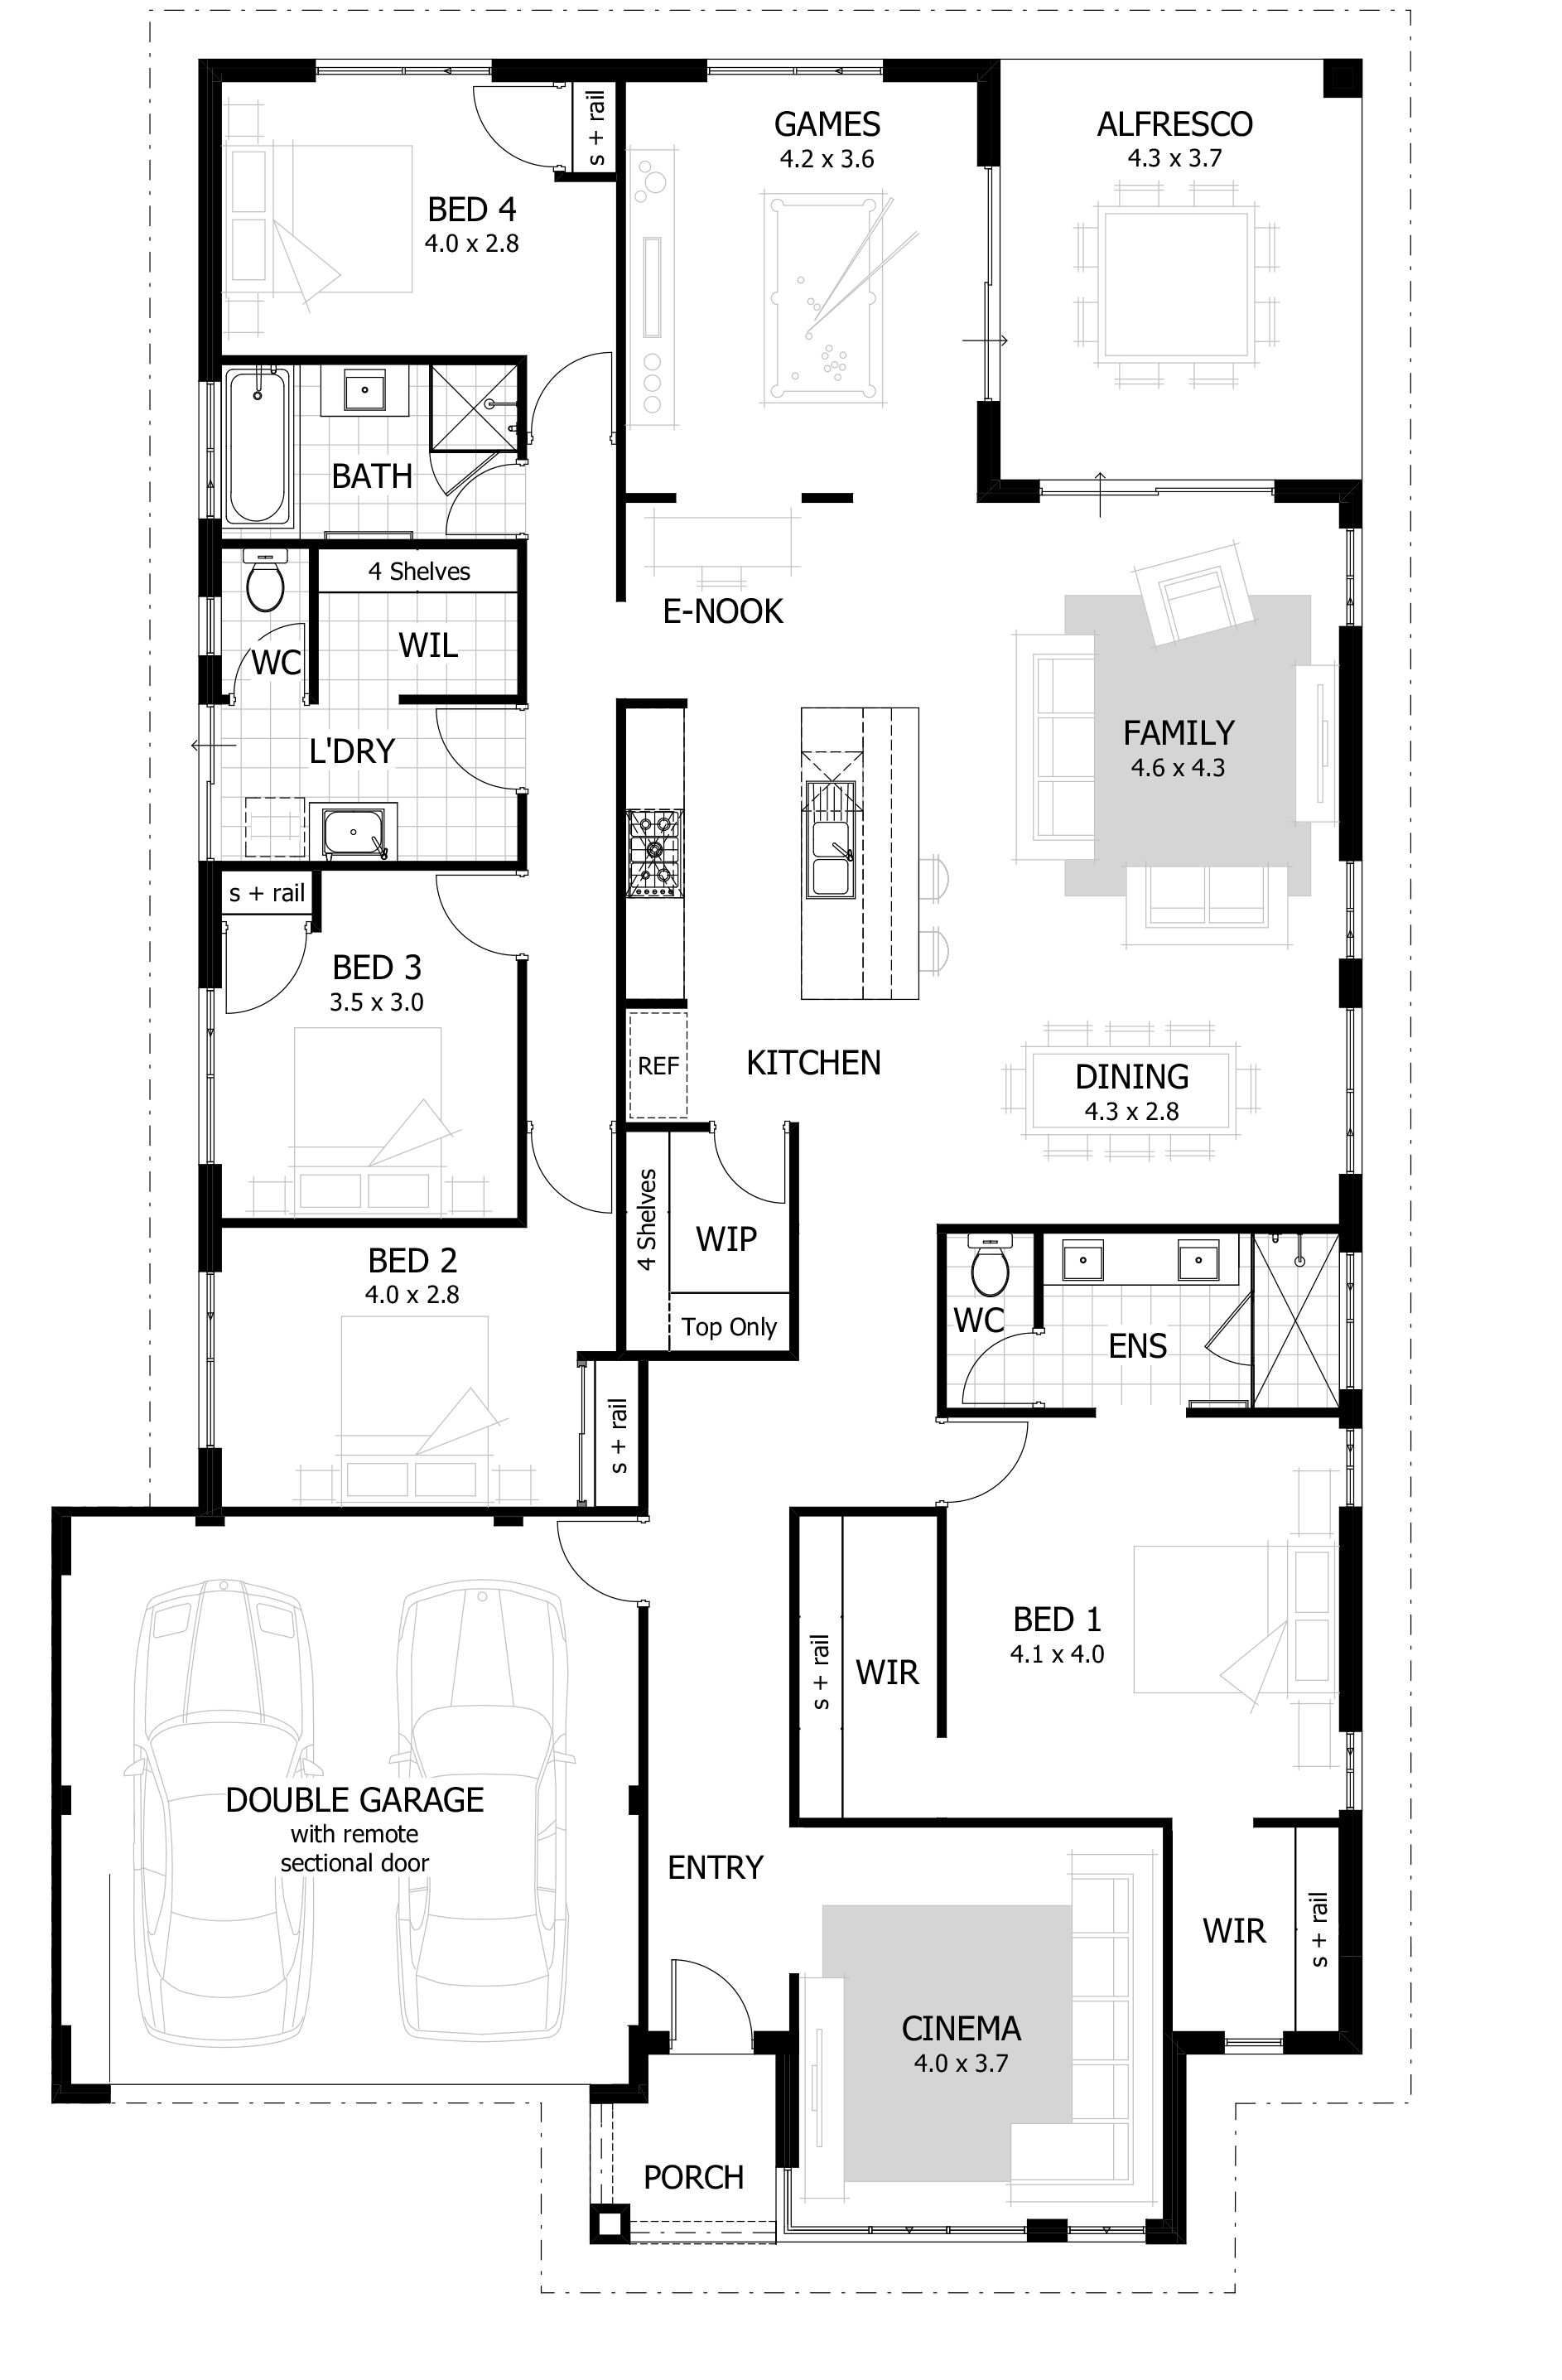 Large Family Homes Celebration Homes Family House Plans Single Level House Plans 4 Bedroom House Plans